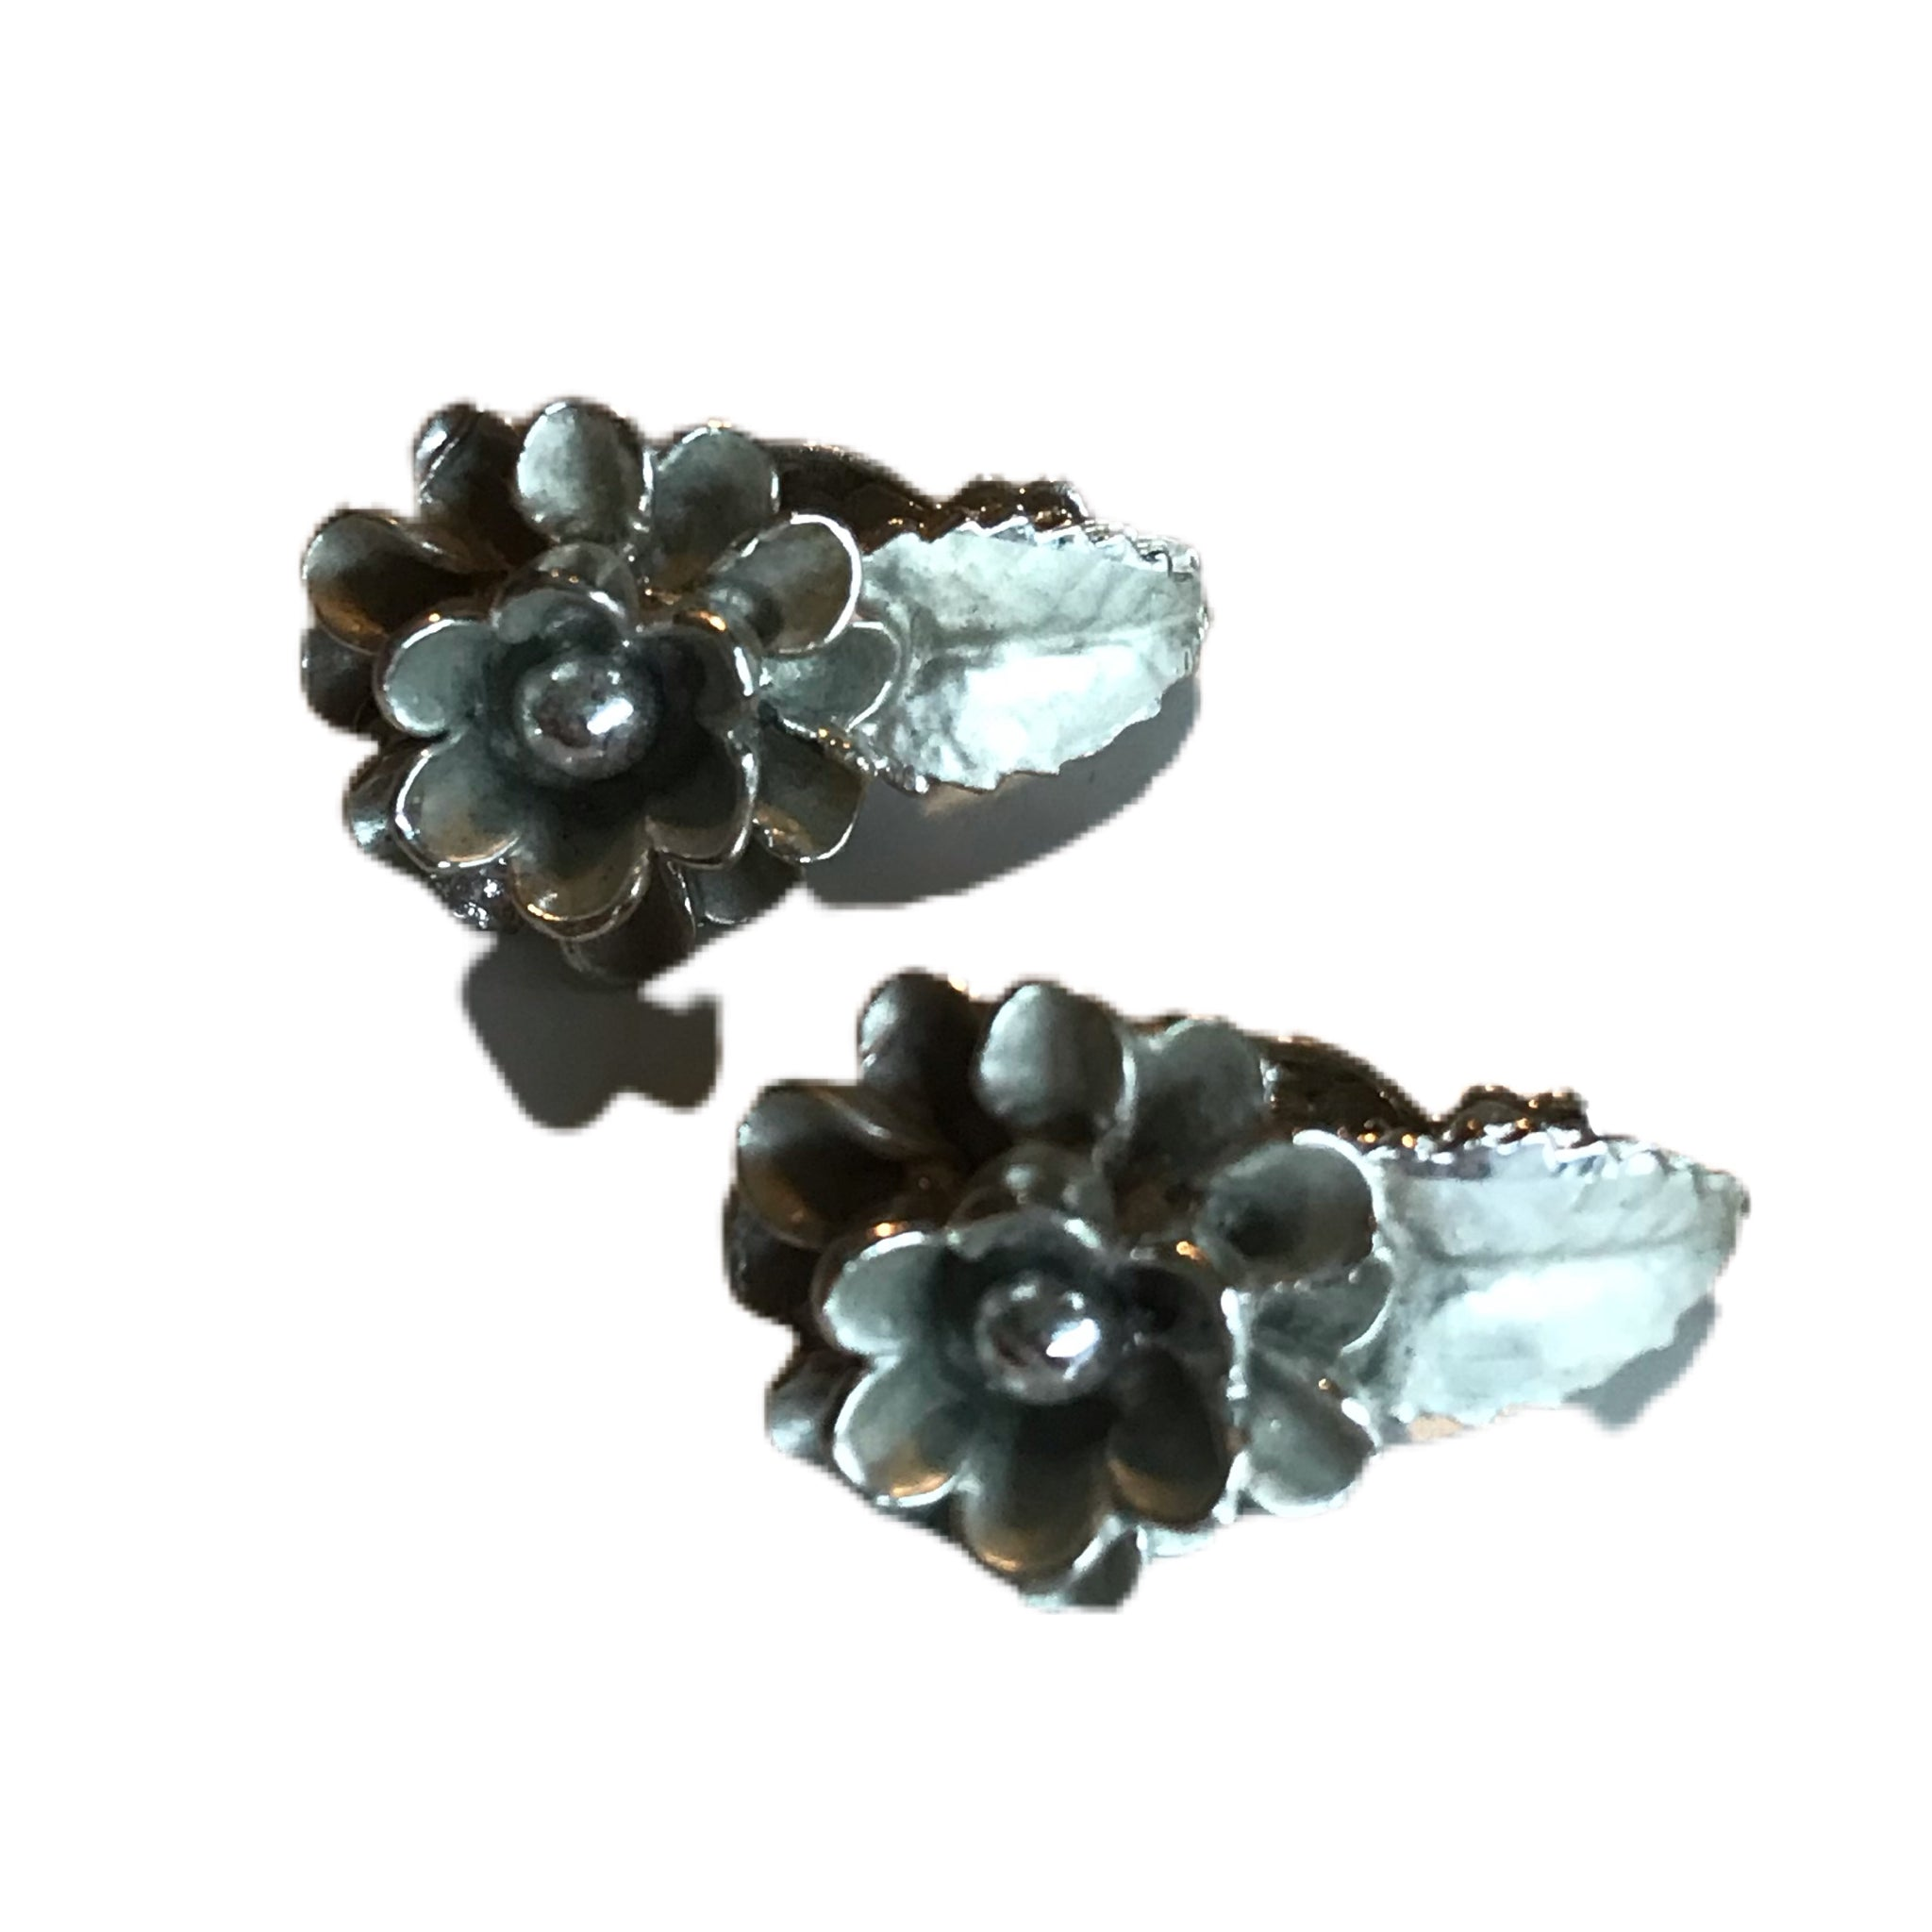 Silver Tone Flower Shaped Clip Earrings circa 1950s